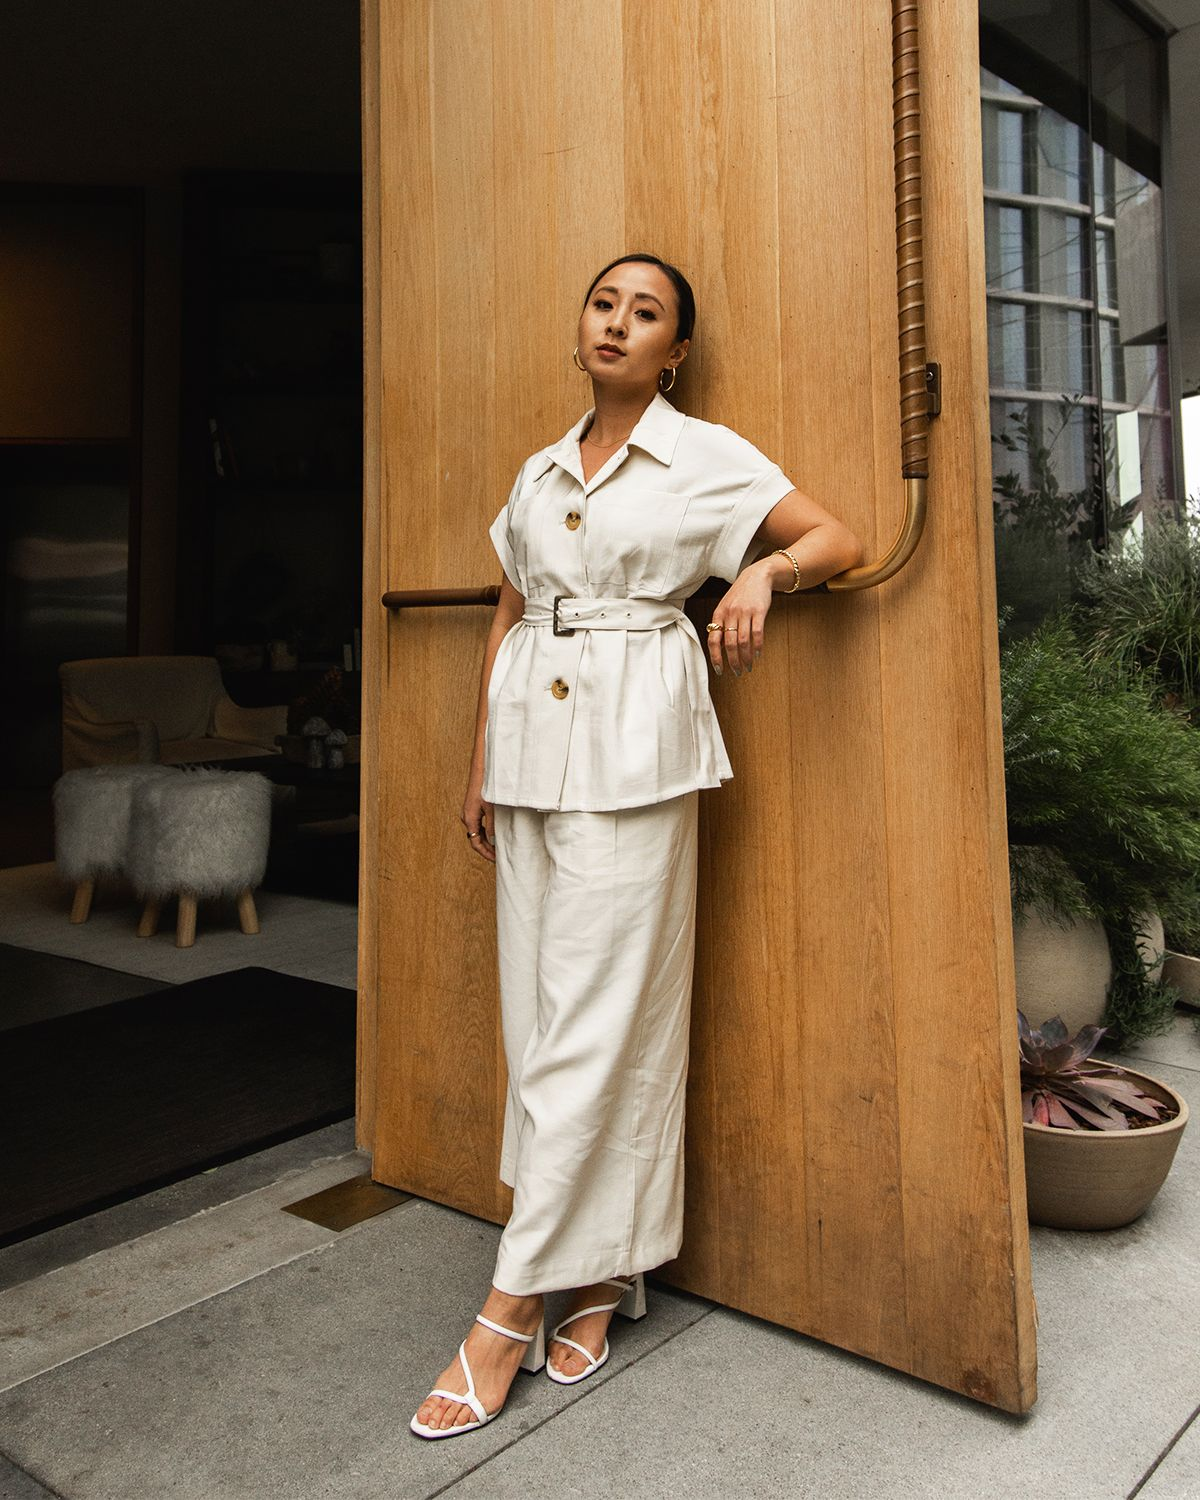 8 Wide-Leg Pant Outfits That Will Make You Want to Ditch Your Skinny Jeans ASAP 9